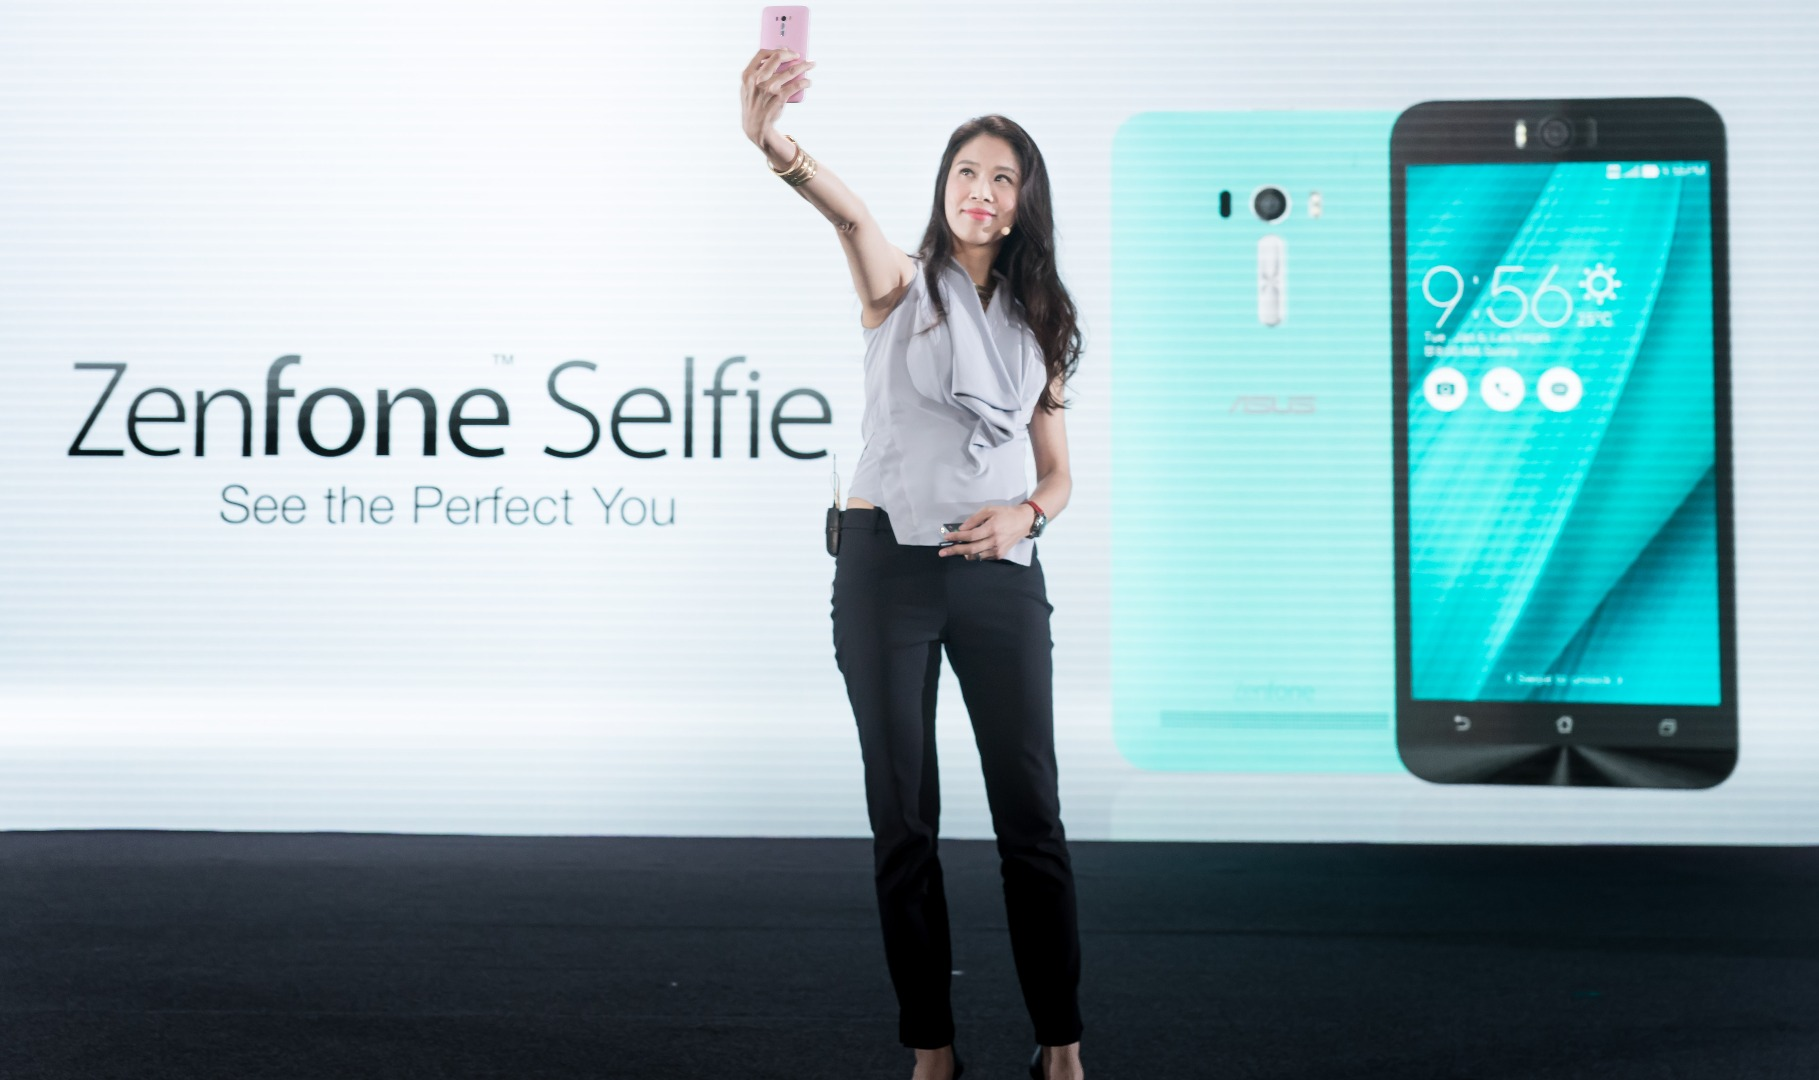 ASUS design center director Jen Chuang demonstrates the new ZenFone Selfie at the Computex conference in Taiwan on June 1, 2015.